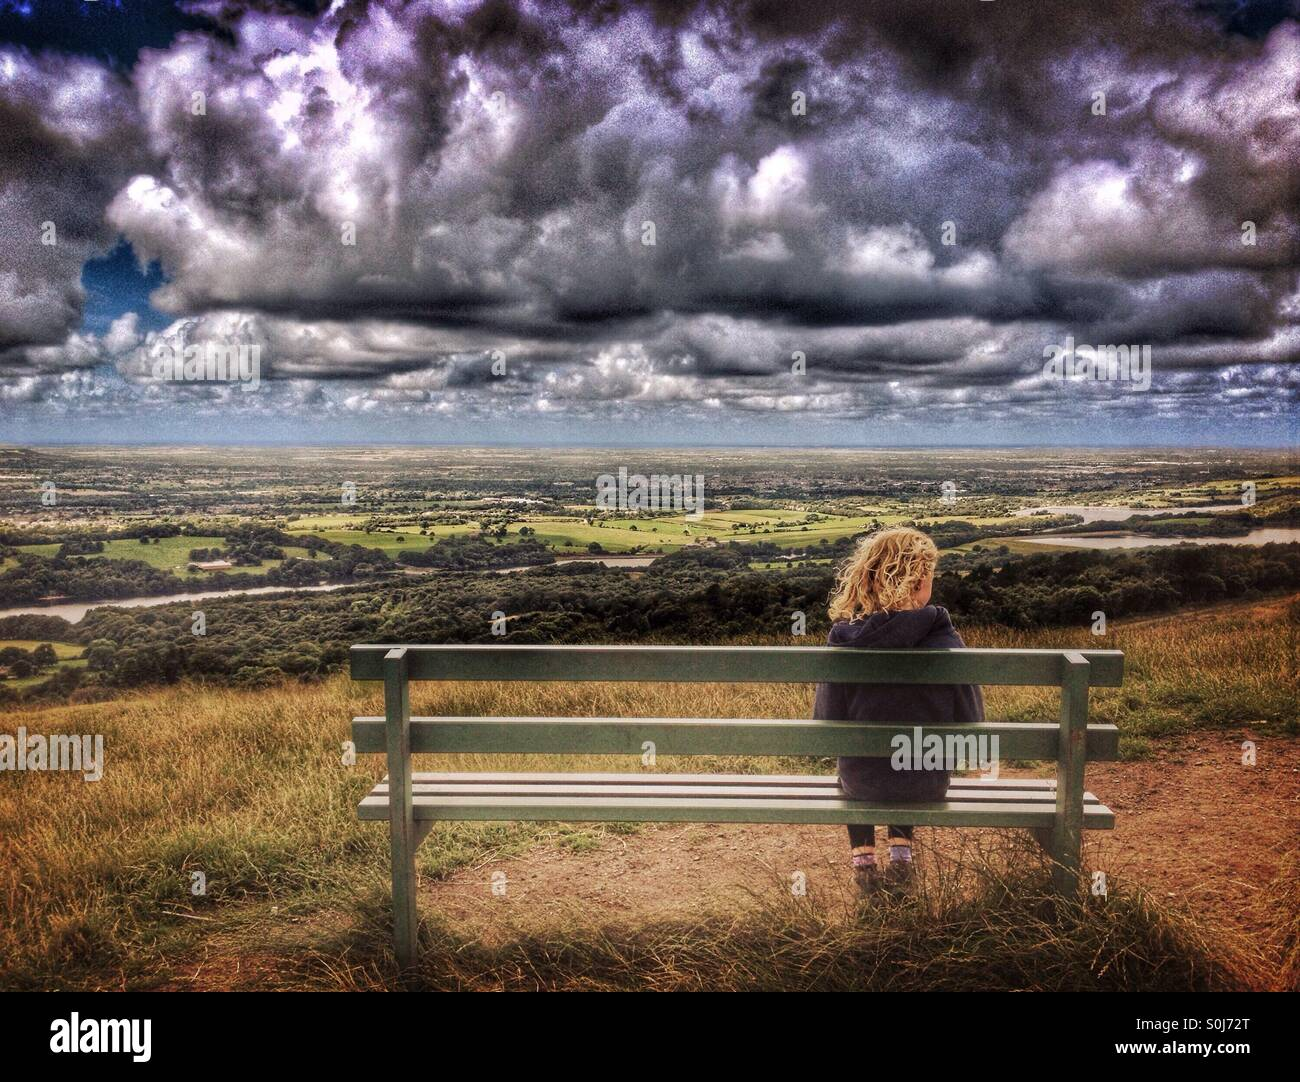 Young girl alone on bench watching approaching storm clouds - Stock Image